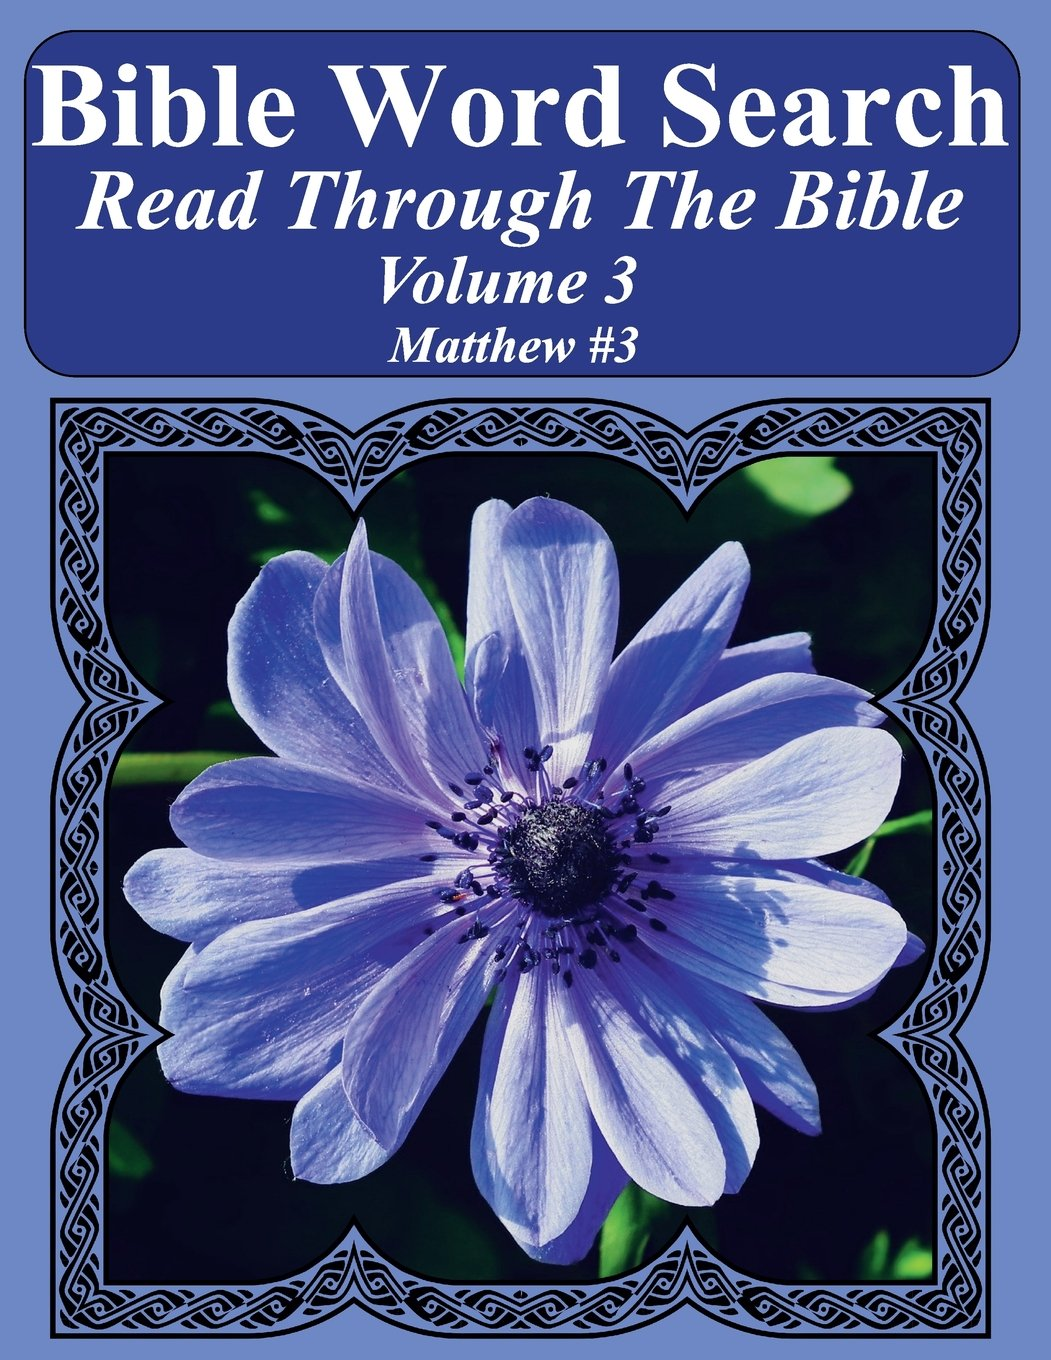 Read Online Bible Word Search Read Through The Bible Volume 3: Matthew #3 Extra Large Print (Bible Word Search Puzzles Jumbo Print Flower Lover's Edition) pdf epub